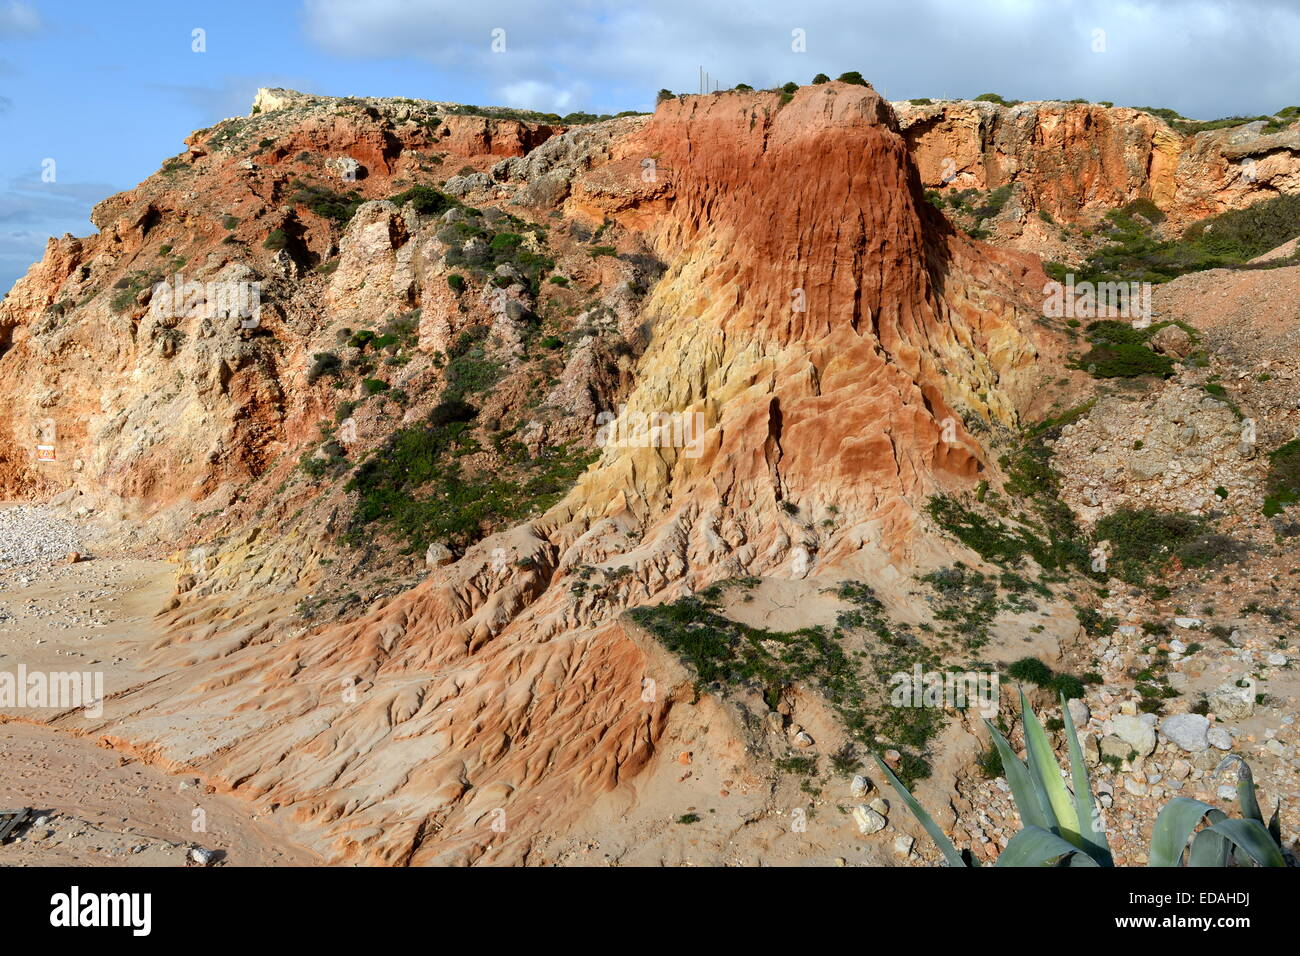 multi-colored  fluvial deposits  have been sculpted by the rain  at Tonel Beach, Algarve ,Portugal - Stock Image